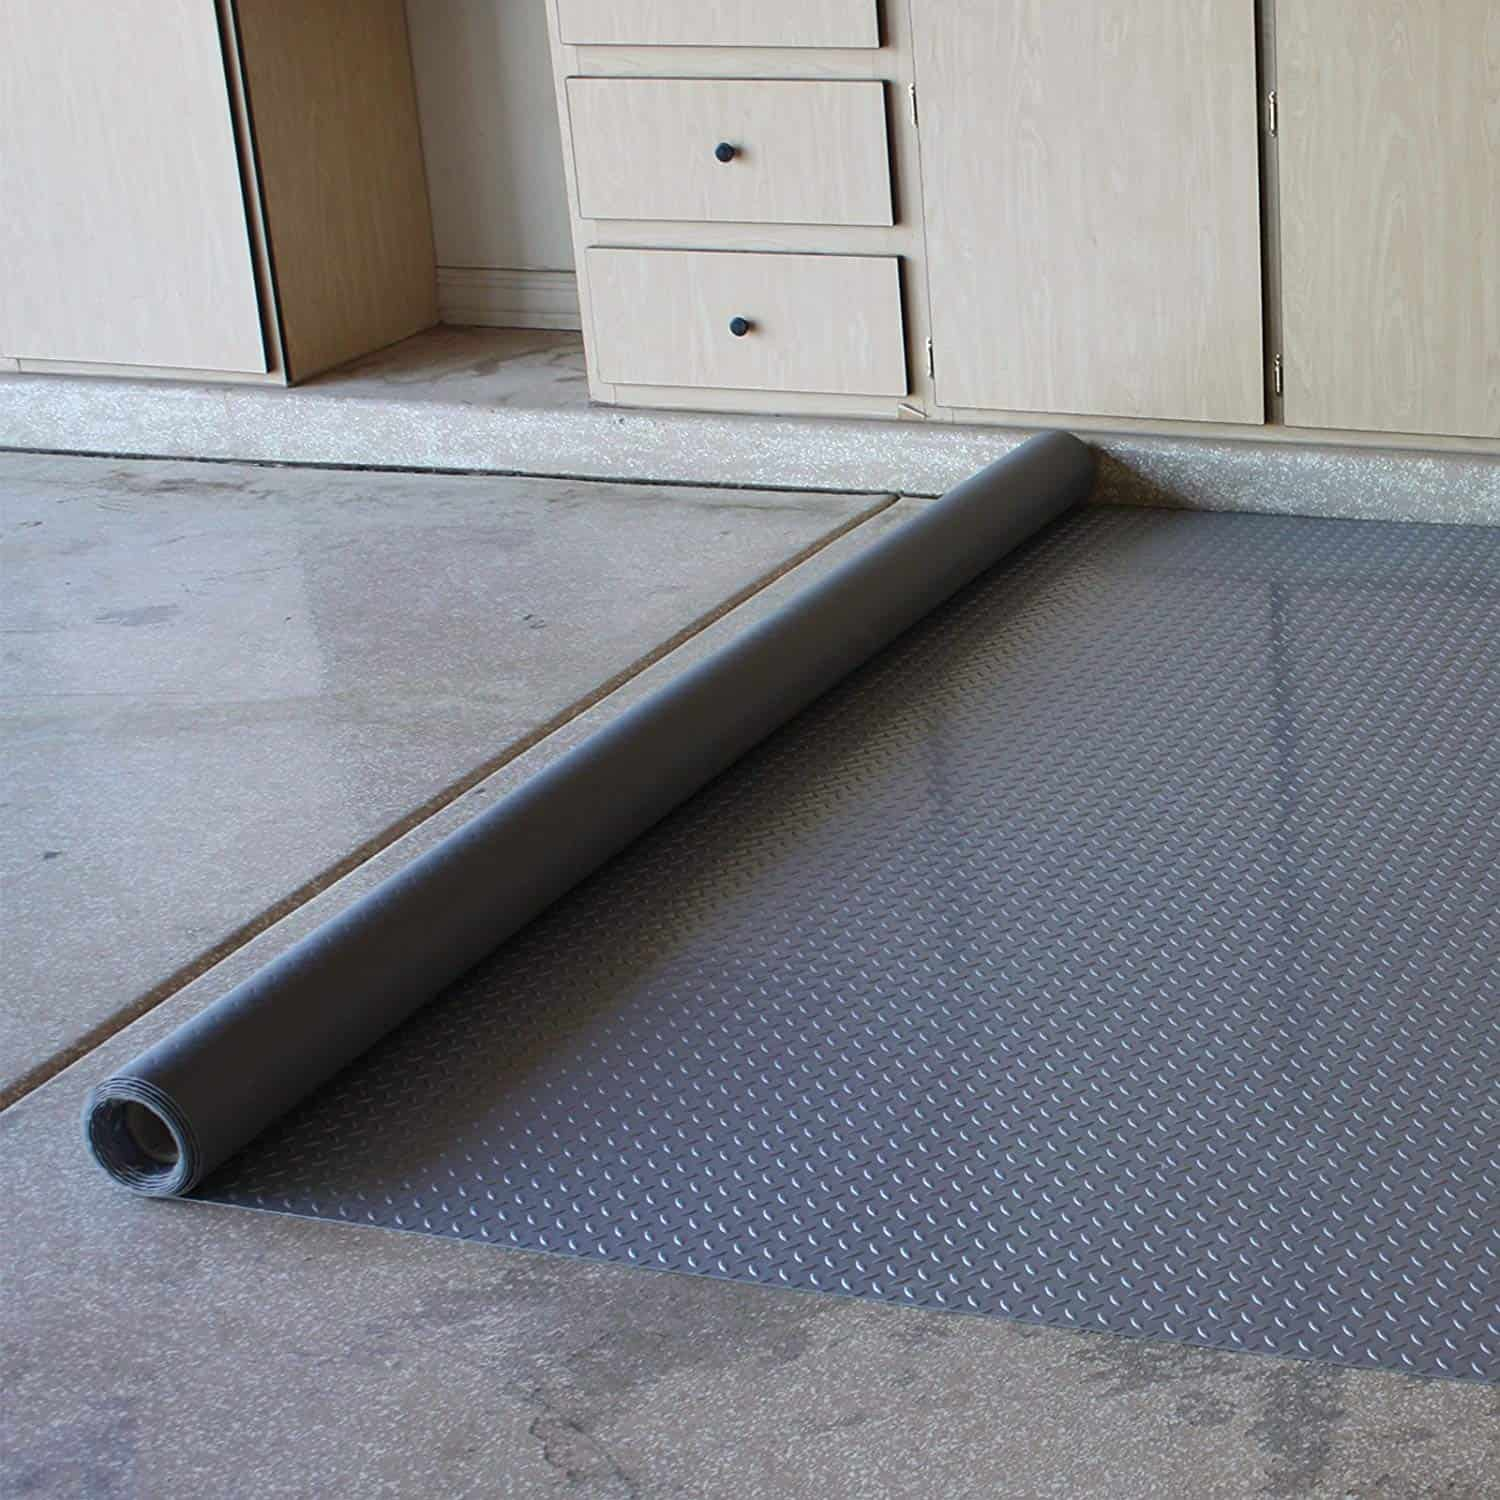 10 Best Garage Floor Mats Reviewed December 2020